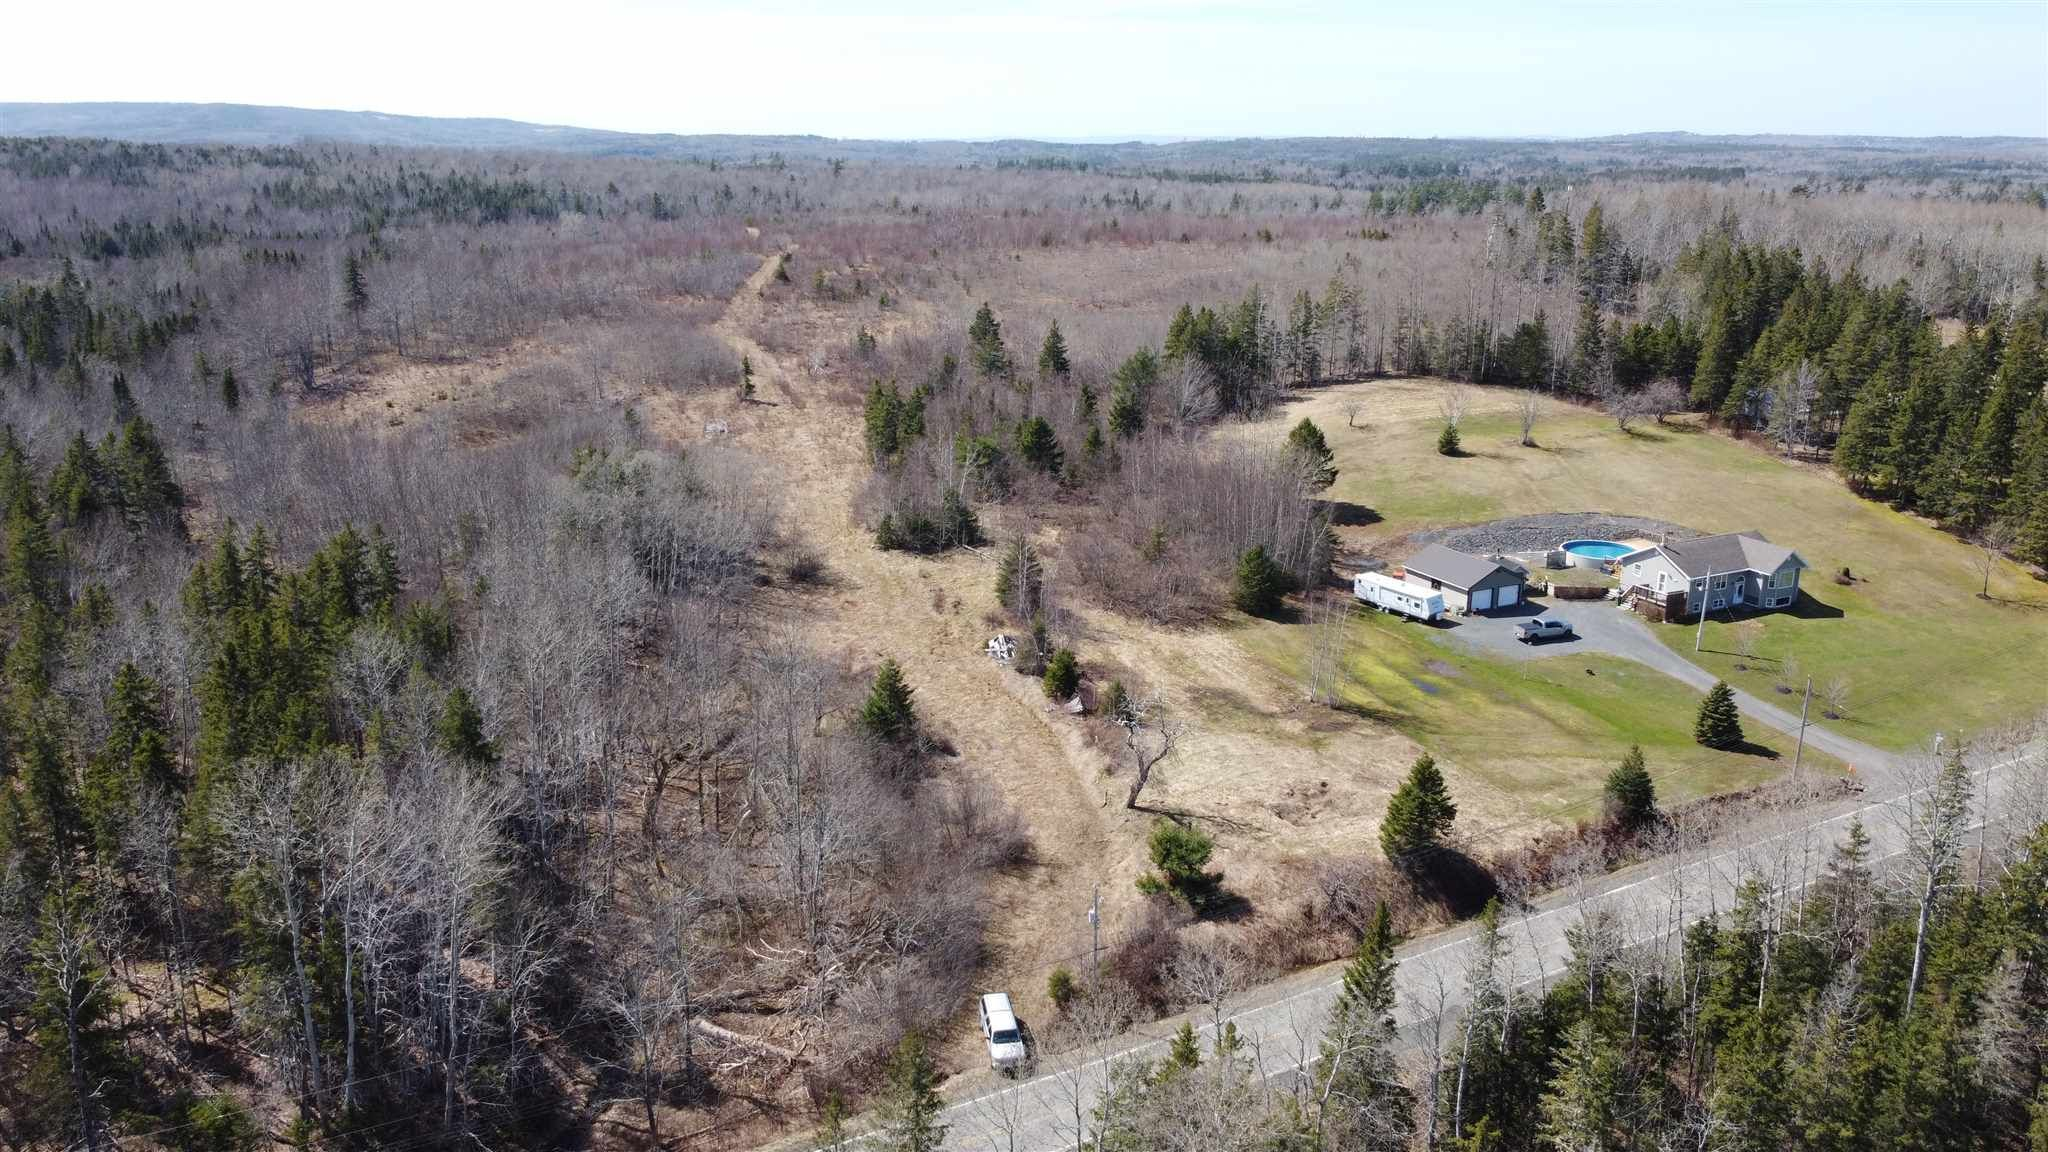 Main Photo: 8532 Trunk 4 Highway in Telford: 108-Rural Pictou County Vacant Land for sale (Northern Region)  : MLS®# 202108300